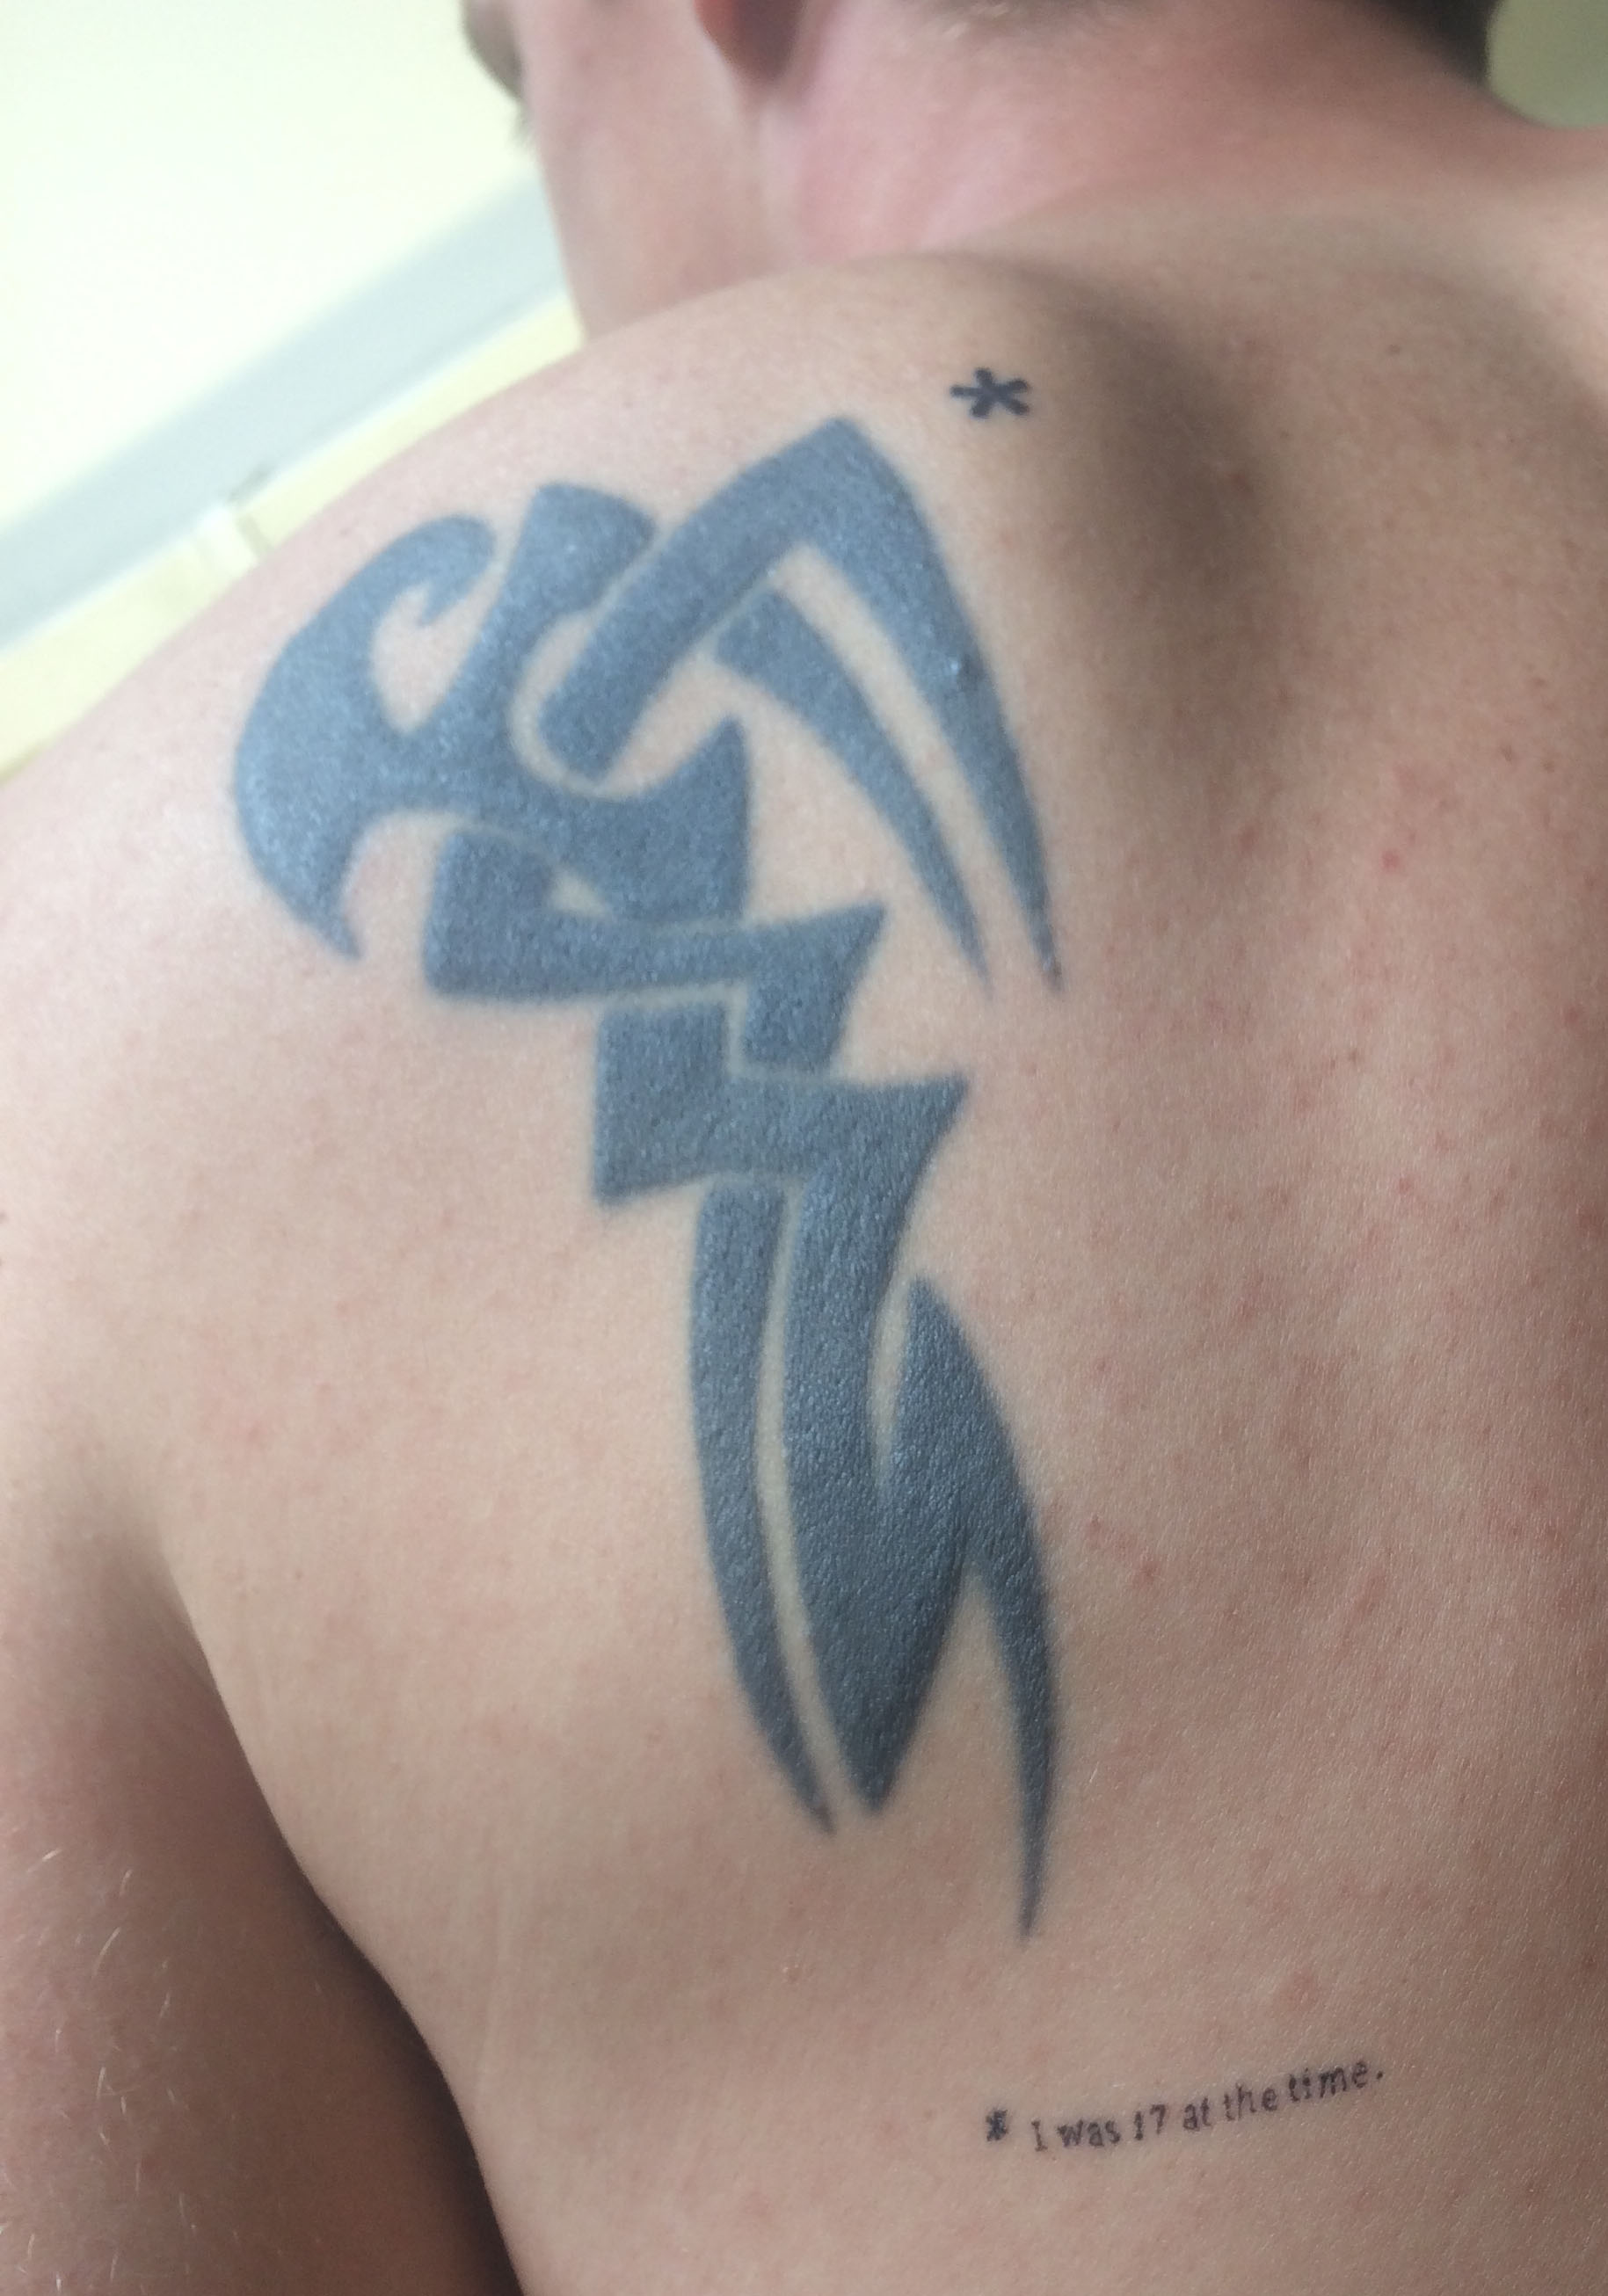 This guy got an ugly tribal tattoo, but don't worry, he fixed it.